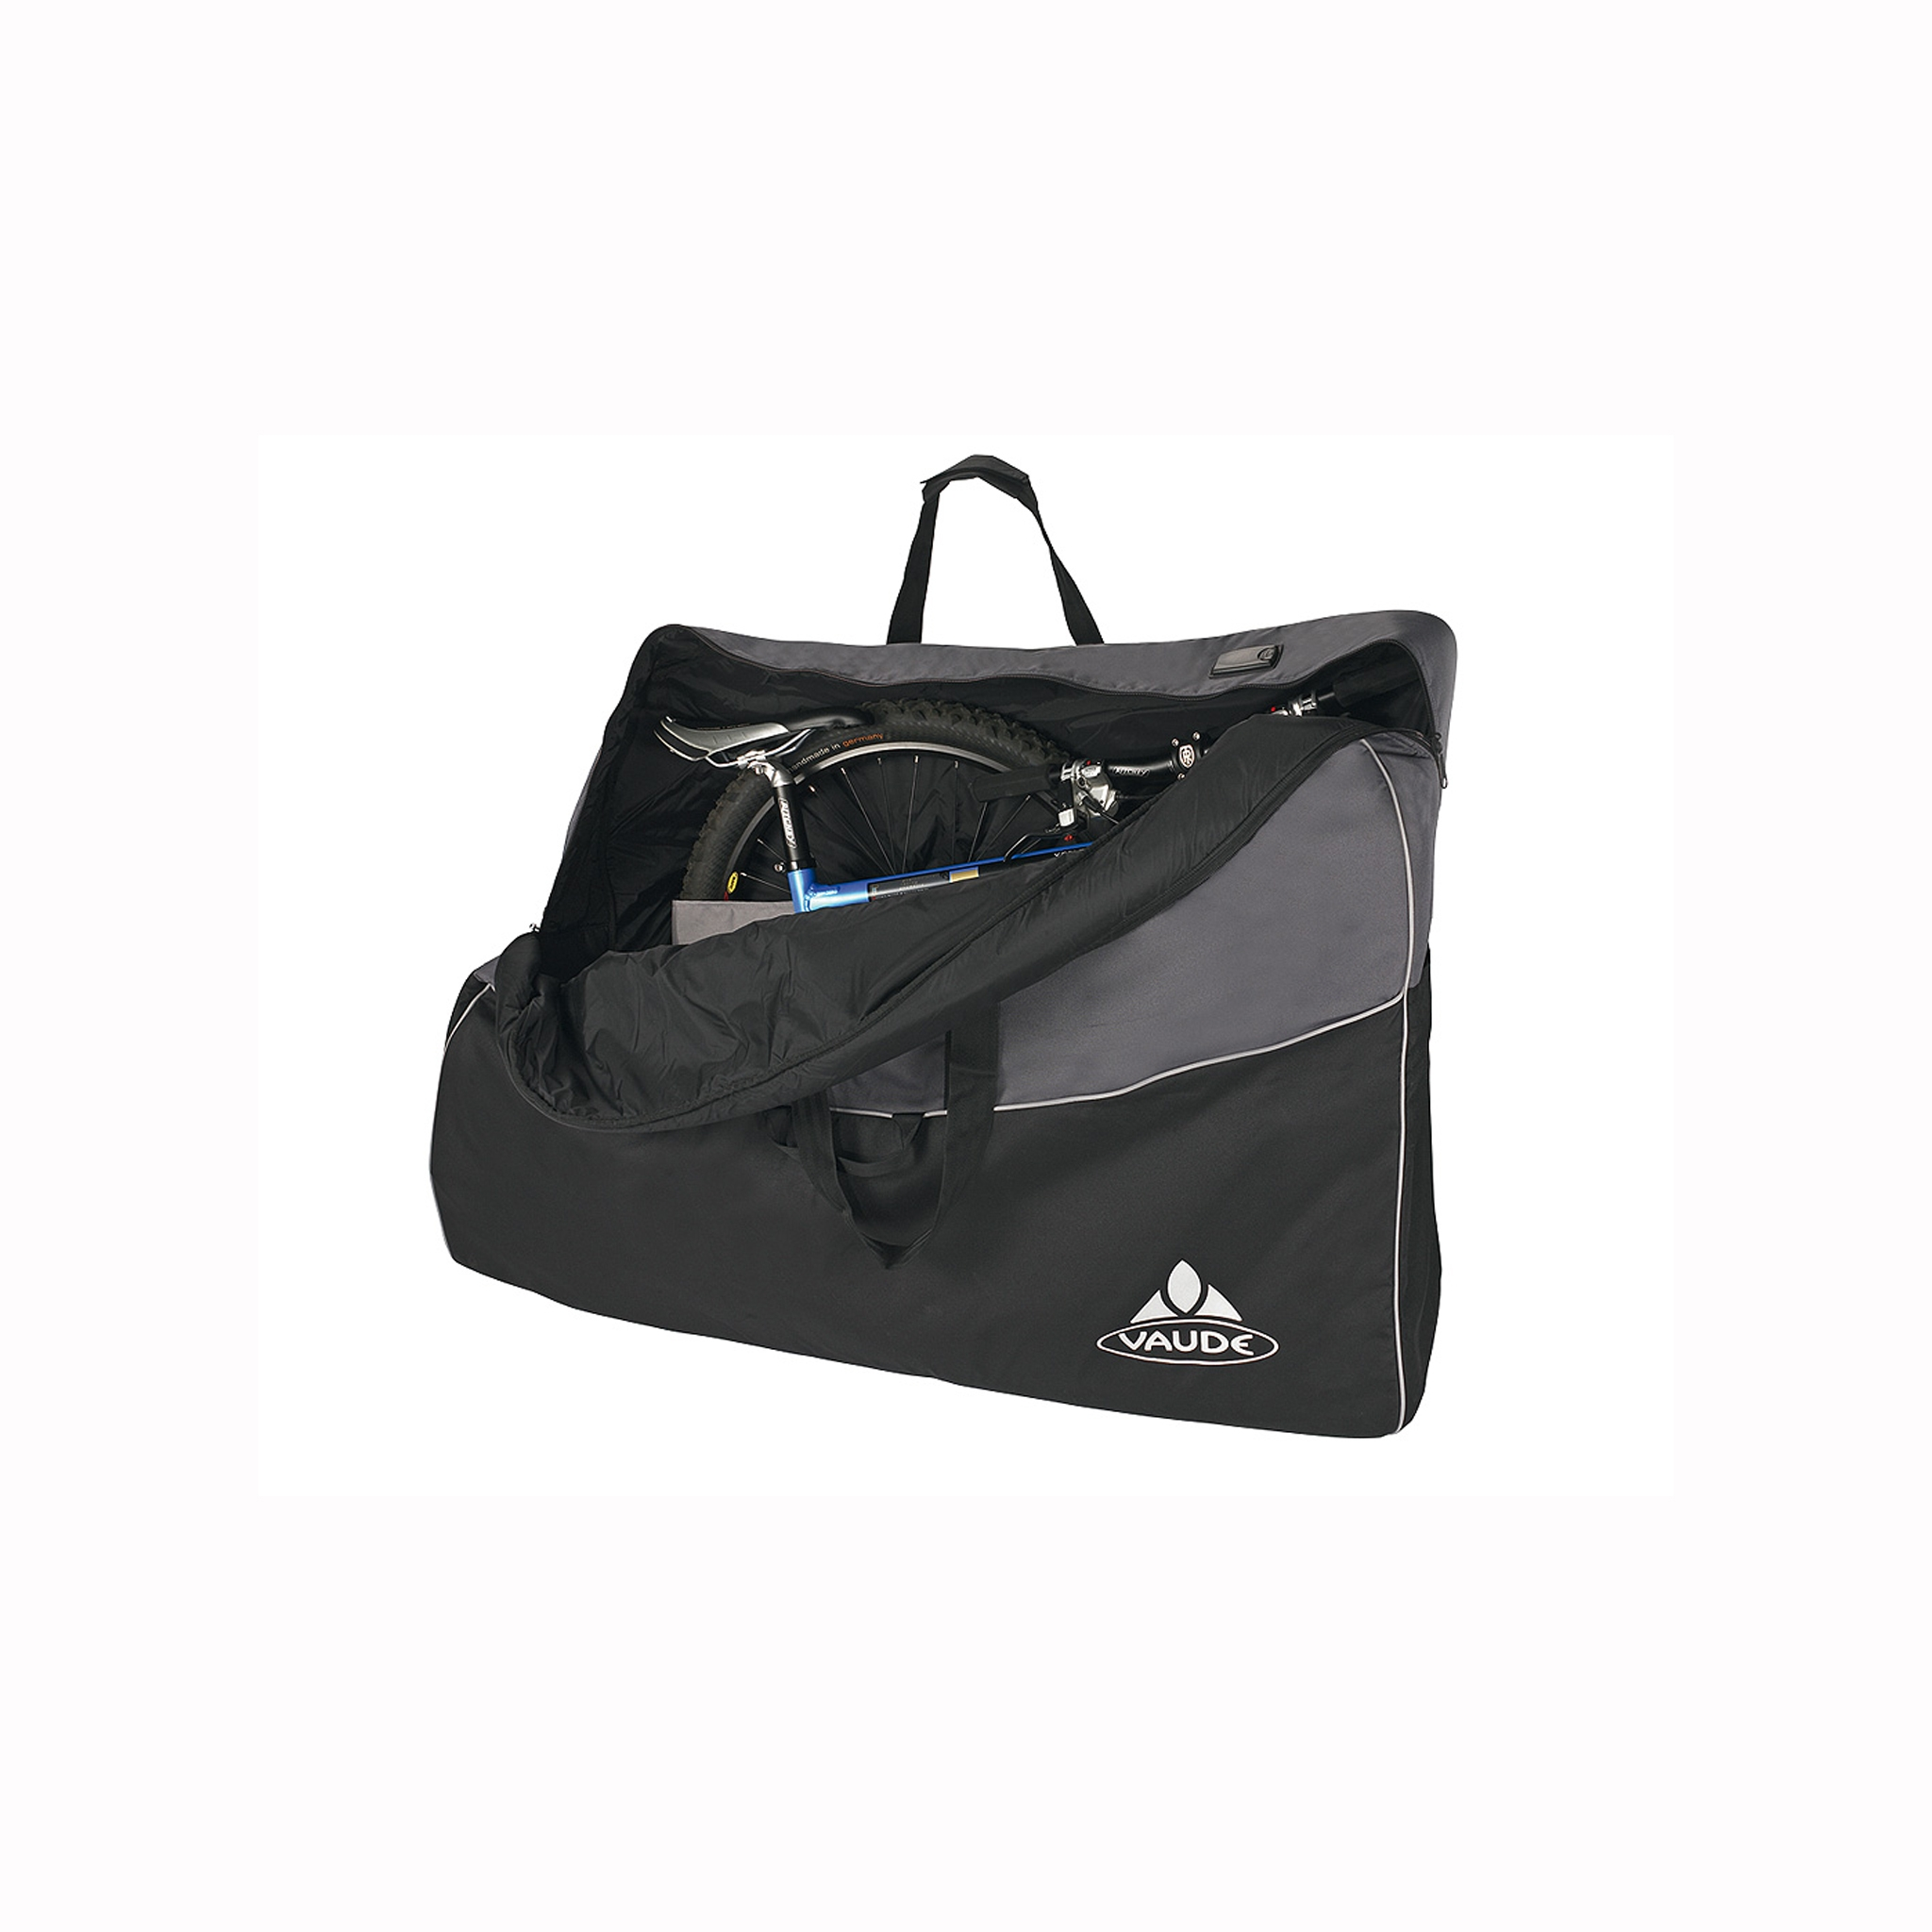 Vaude big bike bag bike bag probikeshop for Housse vtt transport